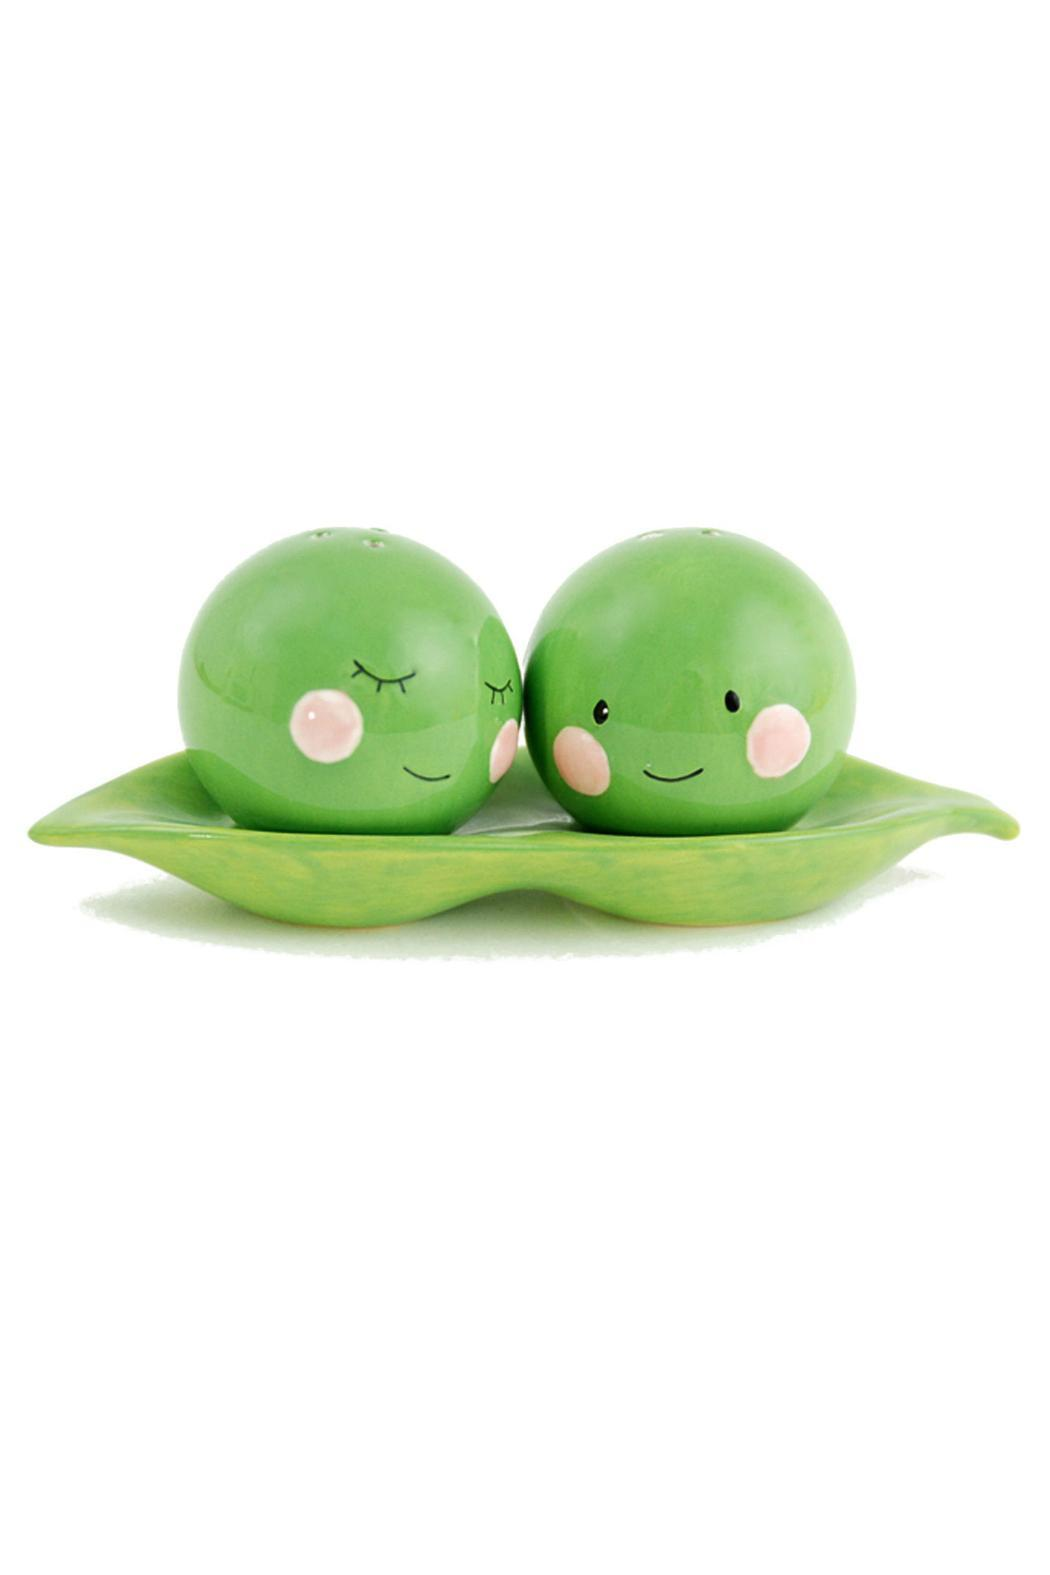 One Hundred 80 Degrees Peas Salt And Pepper Shakers - Main Image